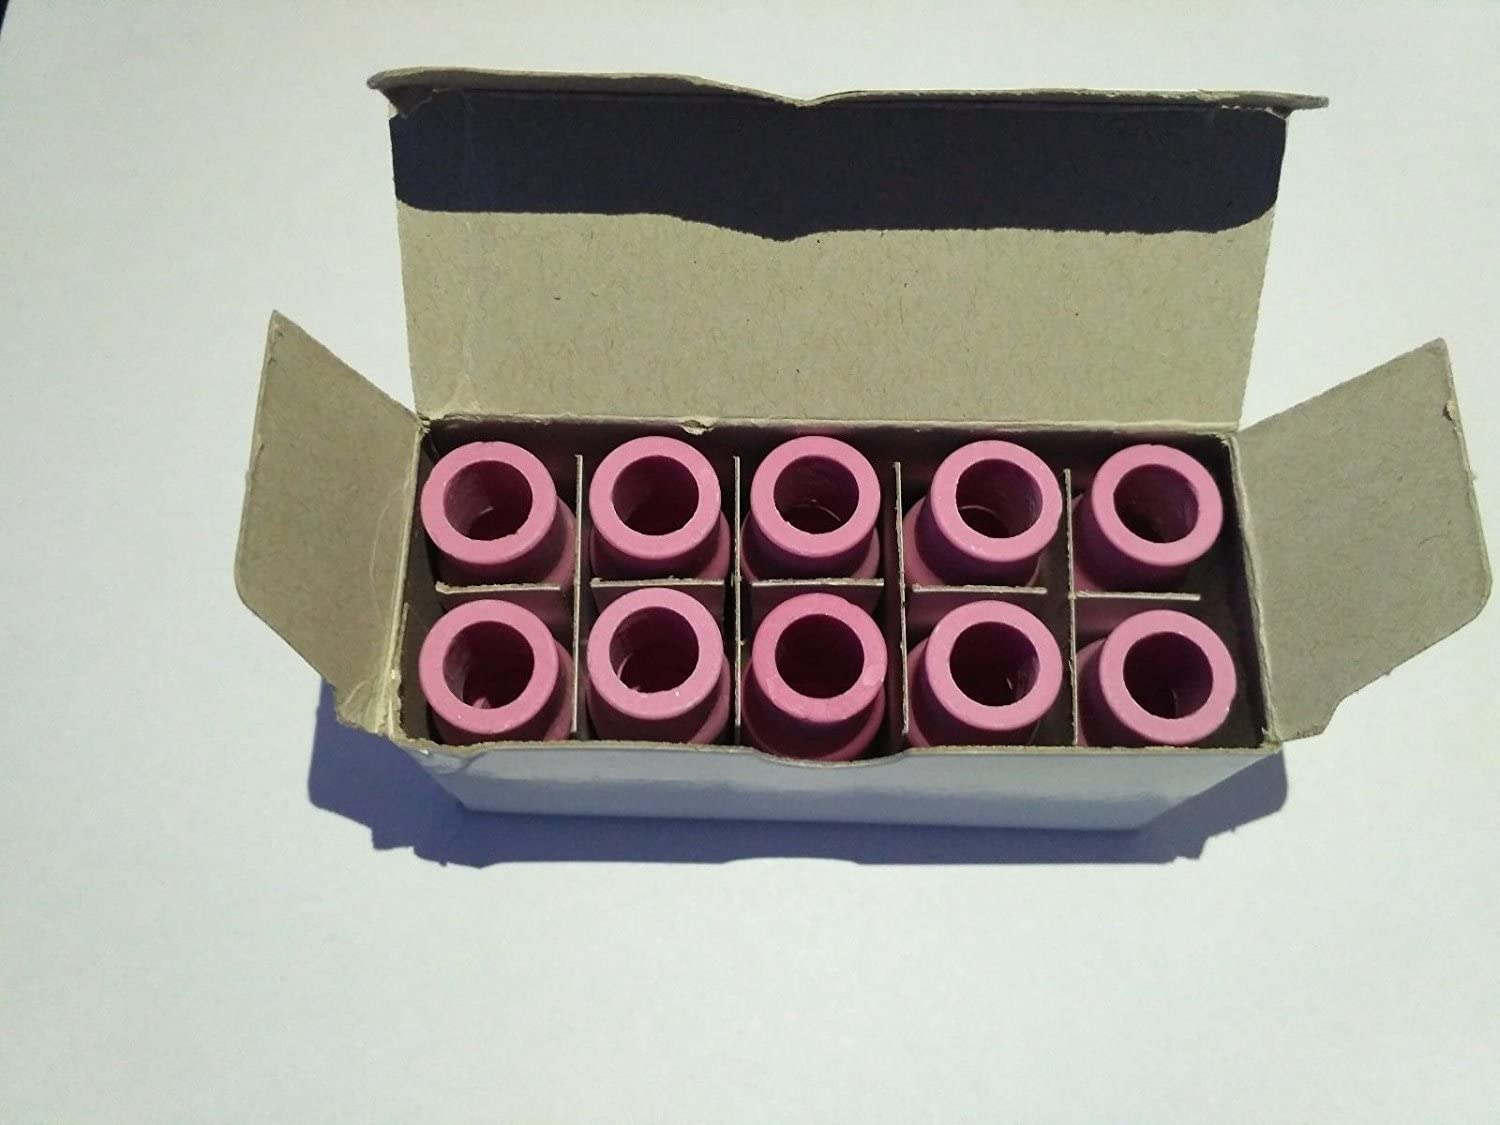 1//16 10 pcs of TIG torch Weld Welding Collet Body 10N31 ETA:7-12 WORK DAYS for Torch 17//18//26 Series